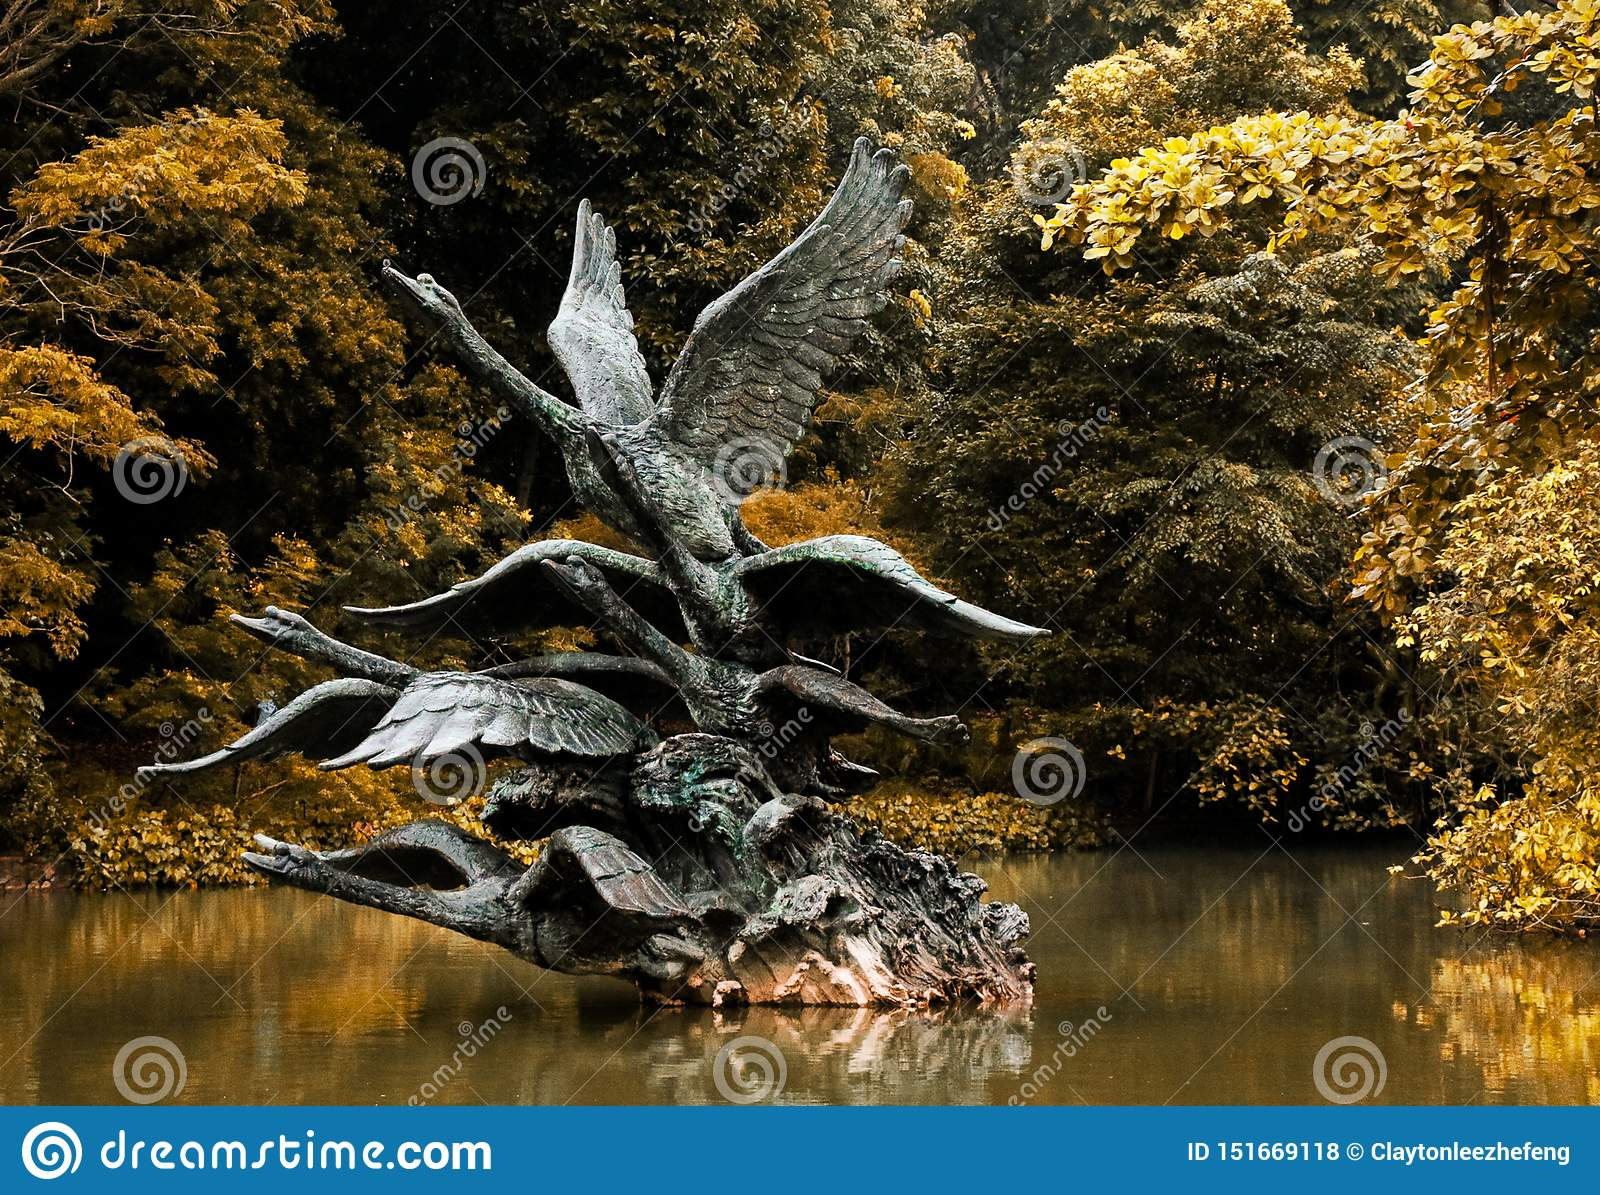 Statue of flying swan